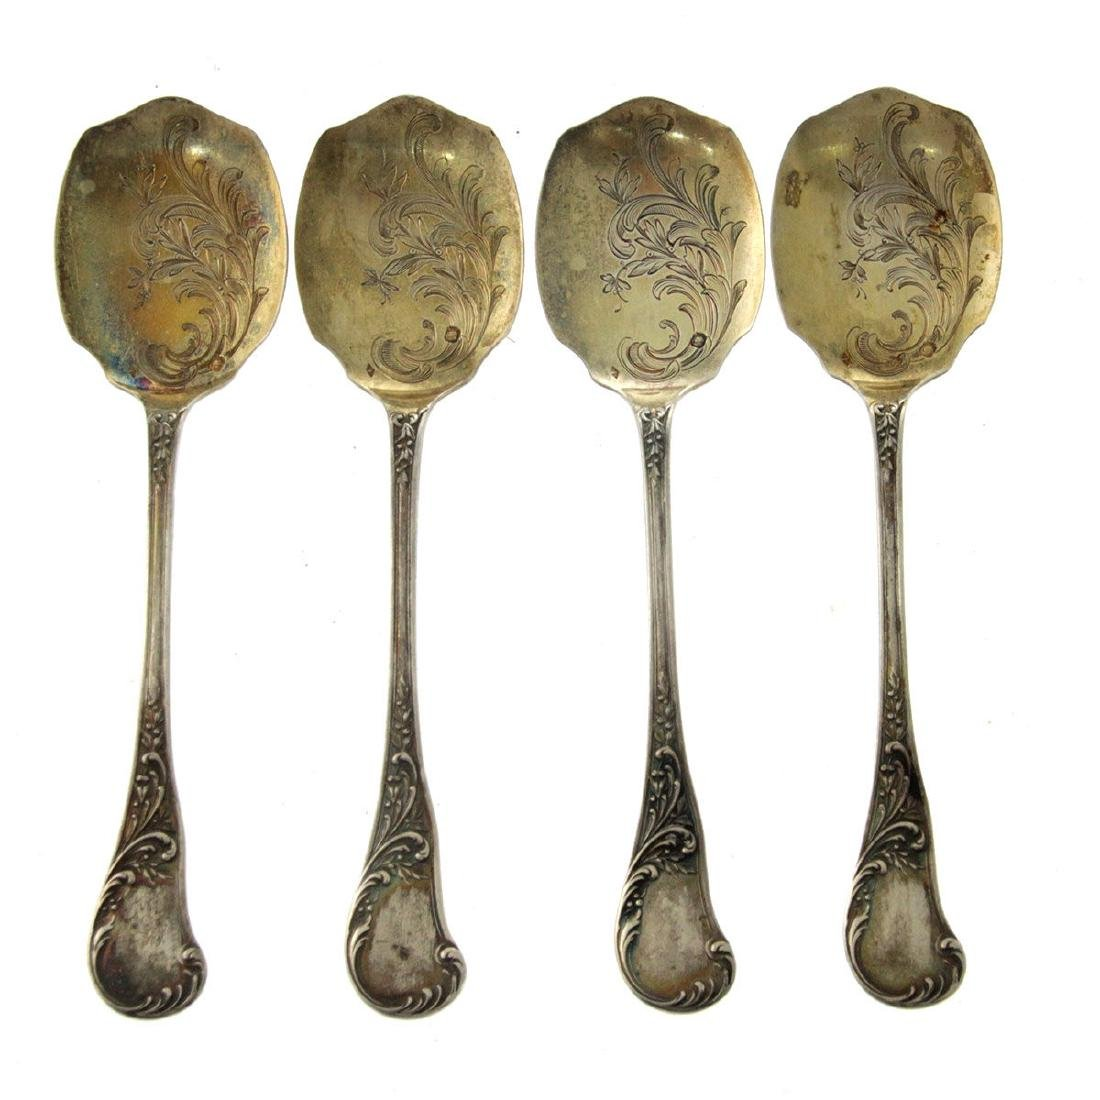 Four Sterling Silver Dessert Spoons, France, Circa